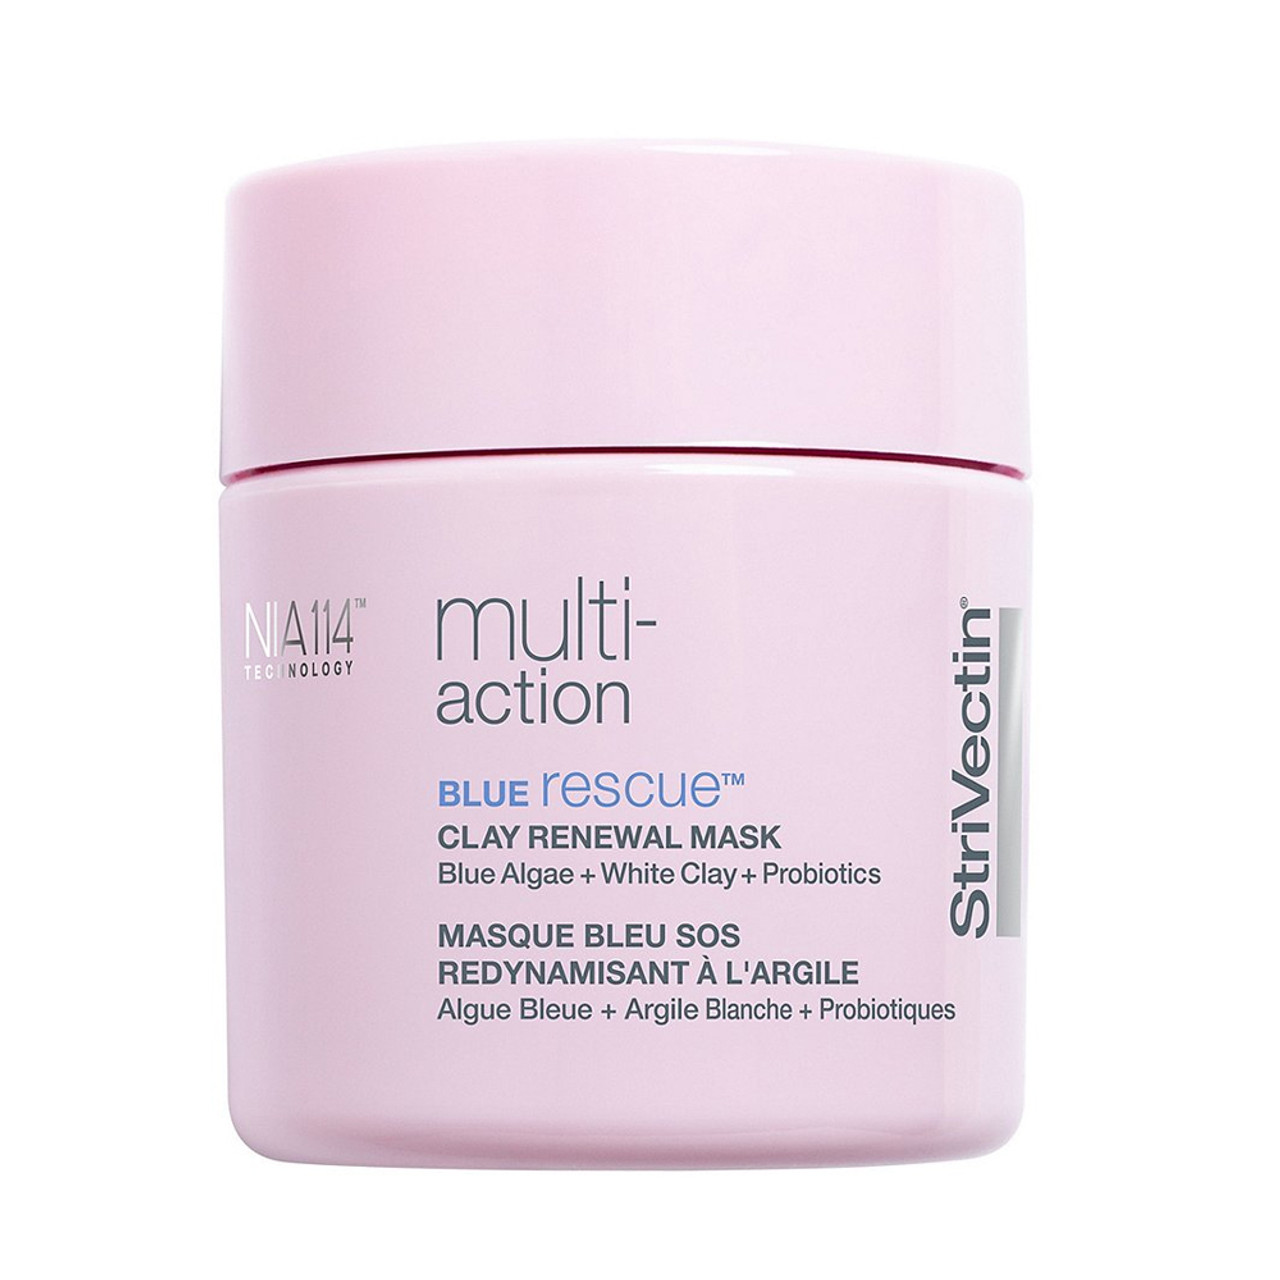 StriVectin Multi-Action Blue Rescue Clay Renewal Mask BeautifiedYou.com